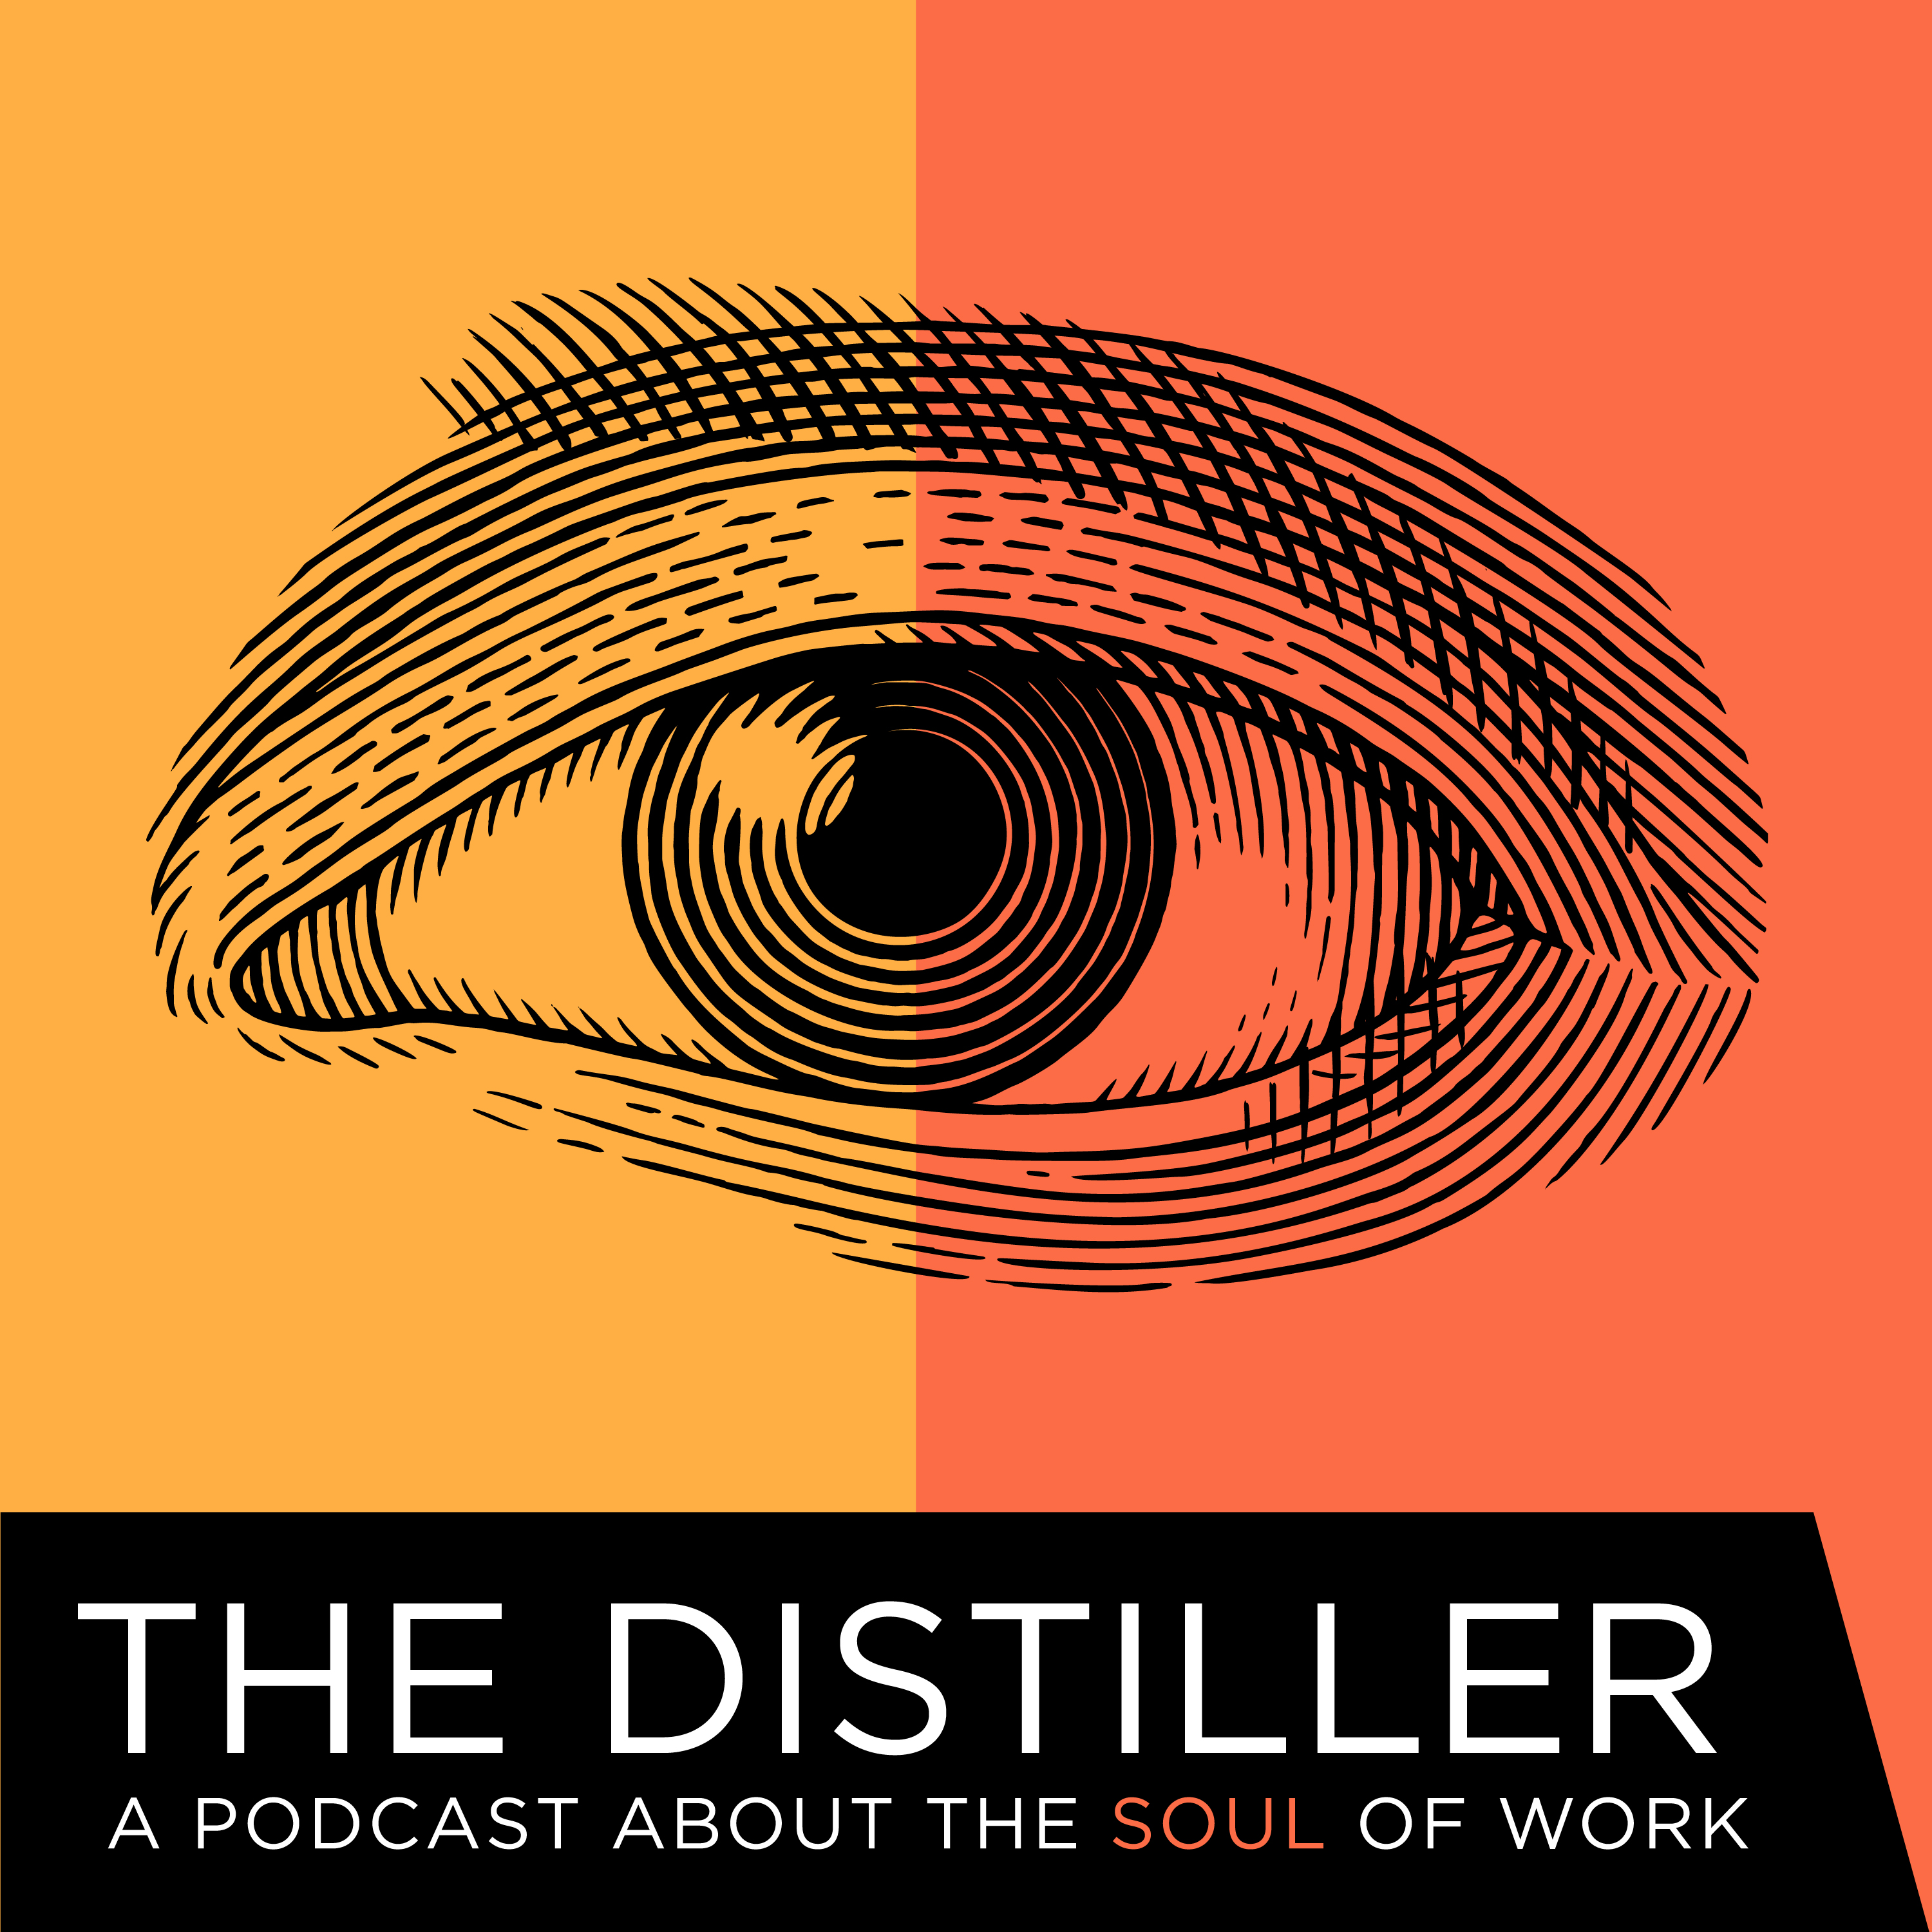 How To Listen & Subscribe To Podcasts | The Distiller